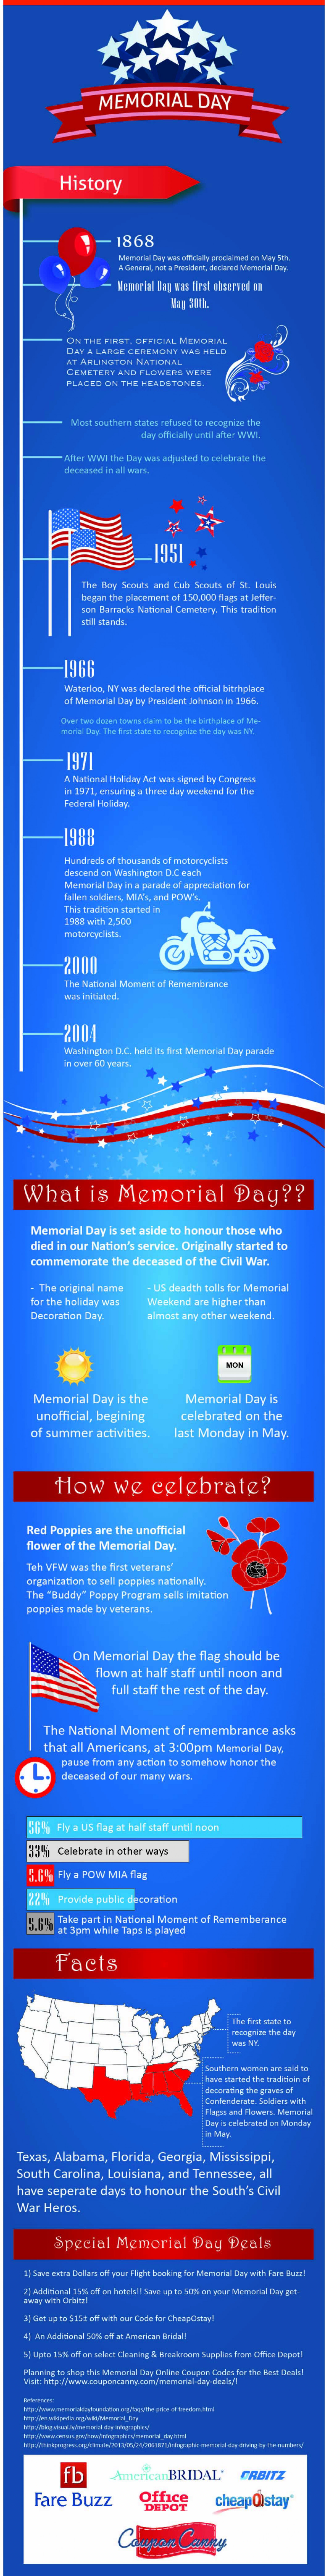 Memorial Day Infographic